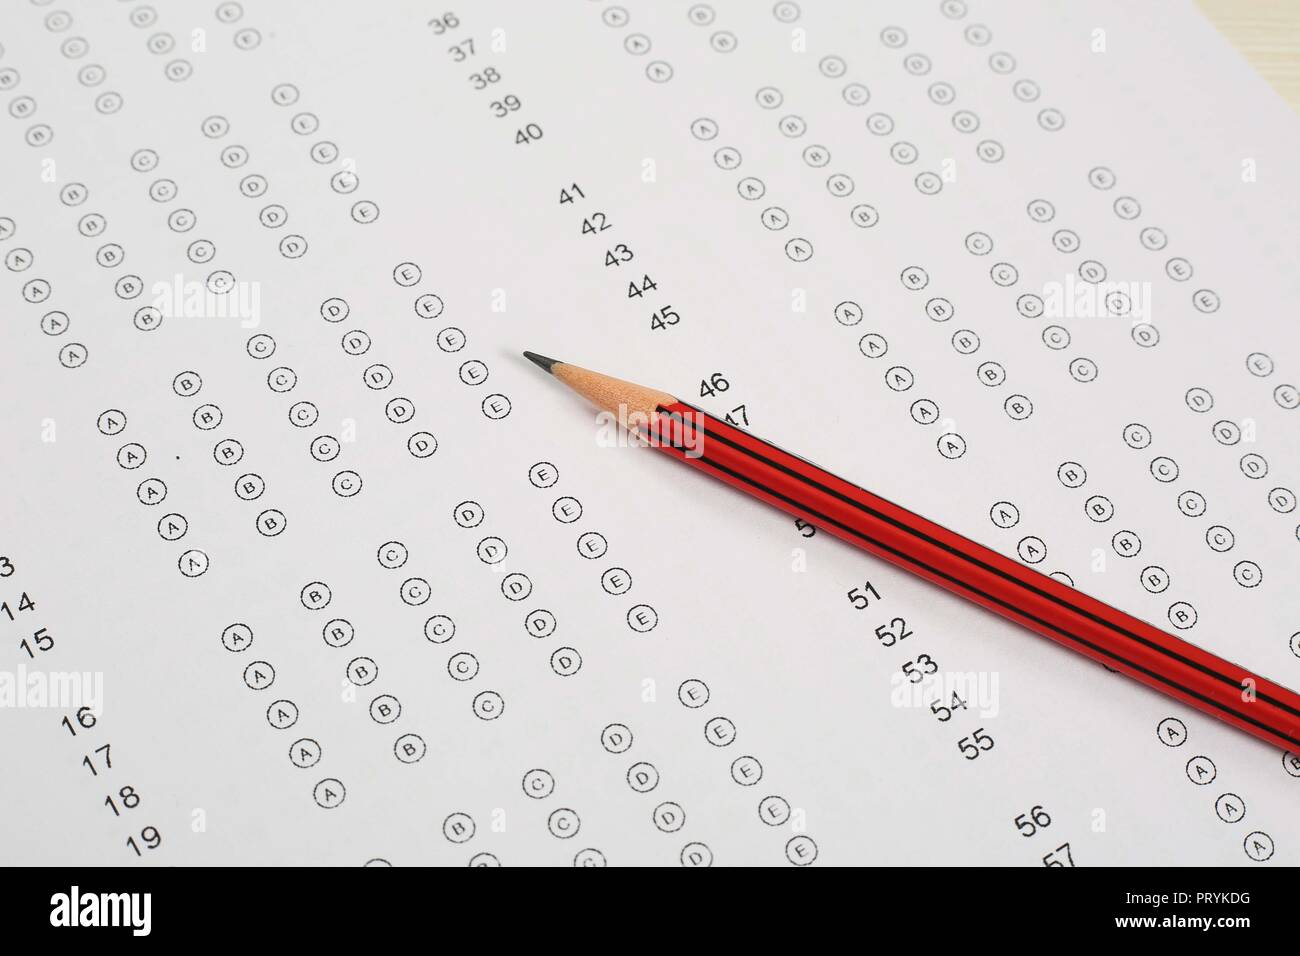 Close up of omr sheet and pencil. - Stock Image